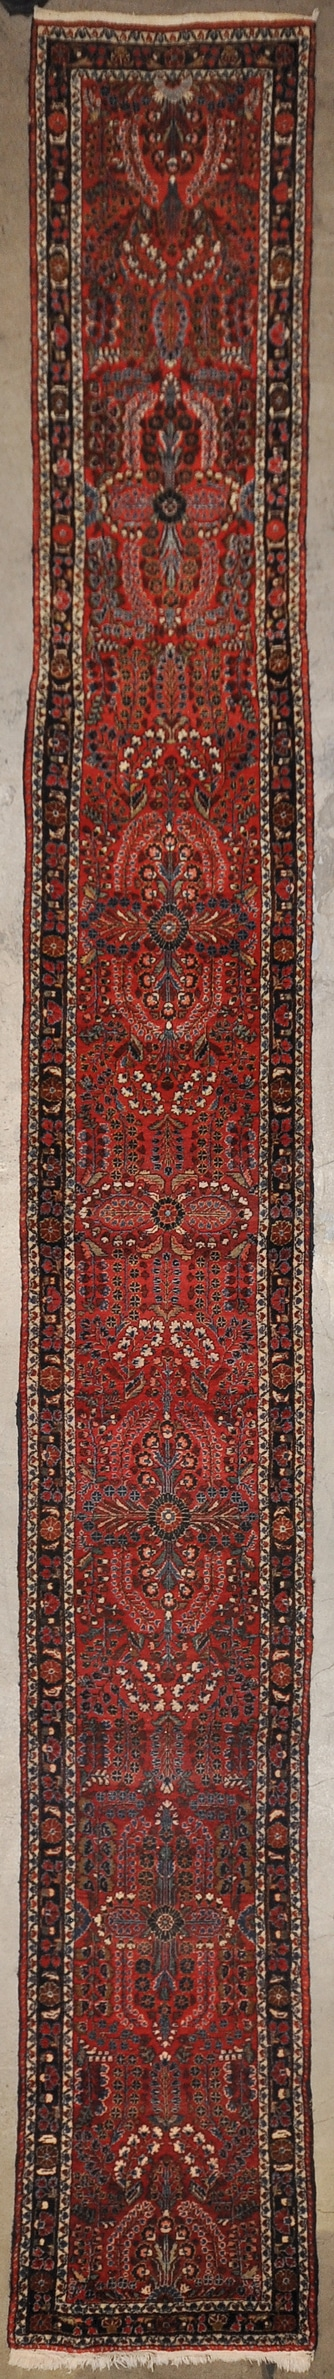 West Persian Runner rugs and more oriental carpet 33615-